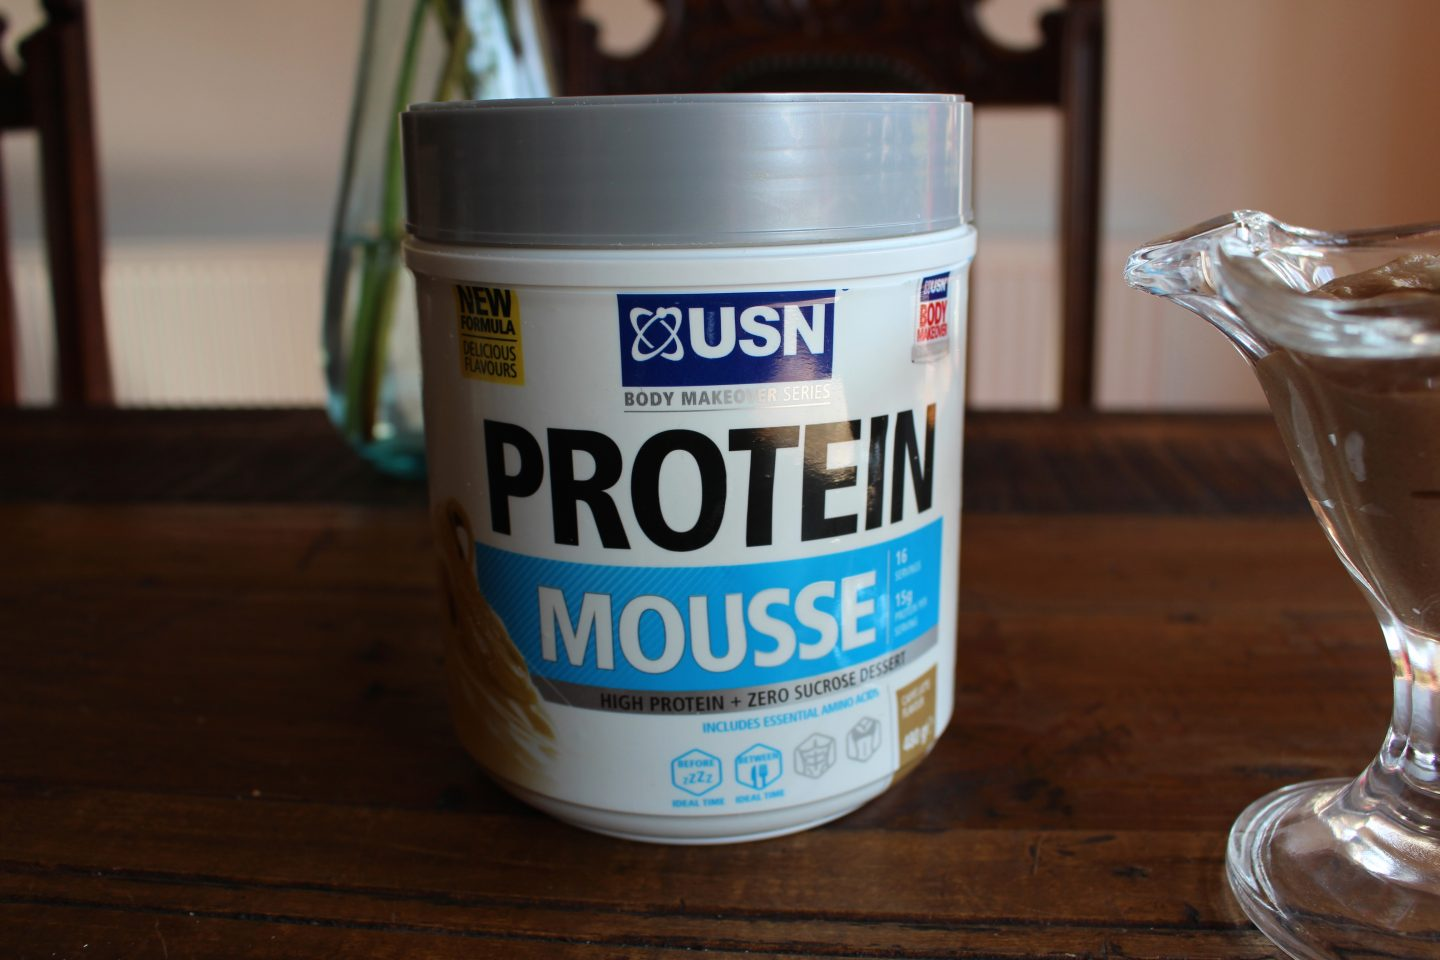 USN Caffe Latte Protein Mousse Review & Discount Code